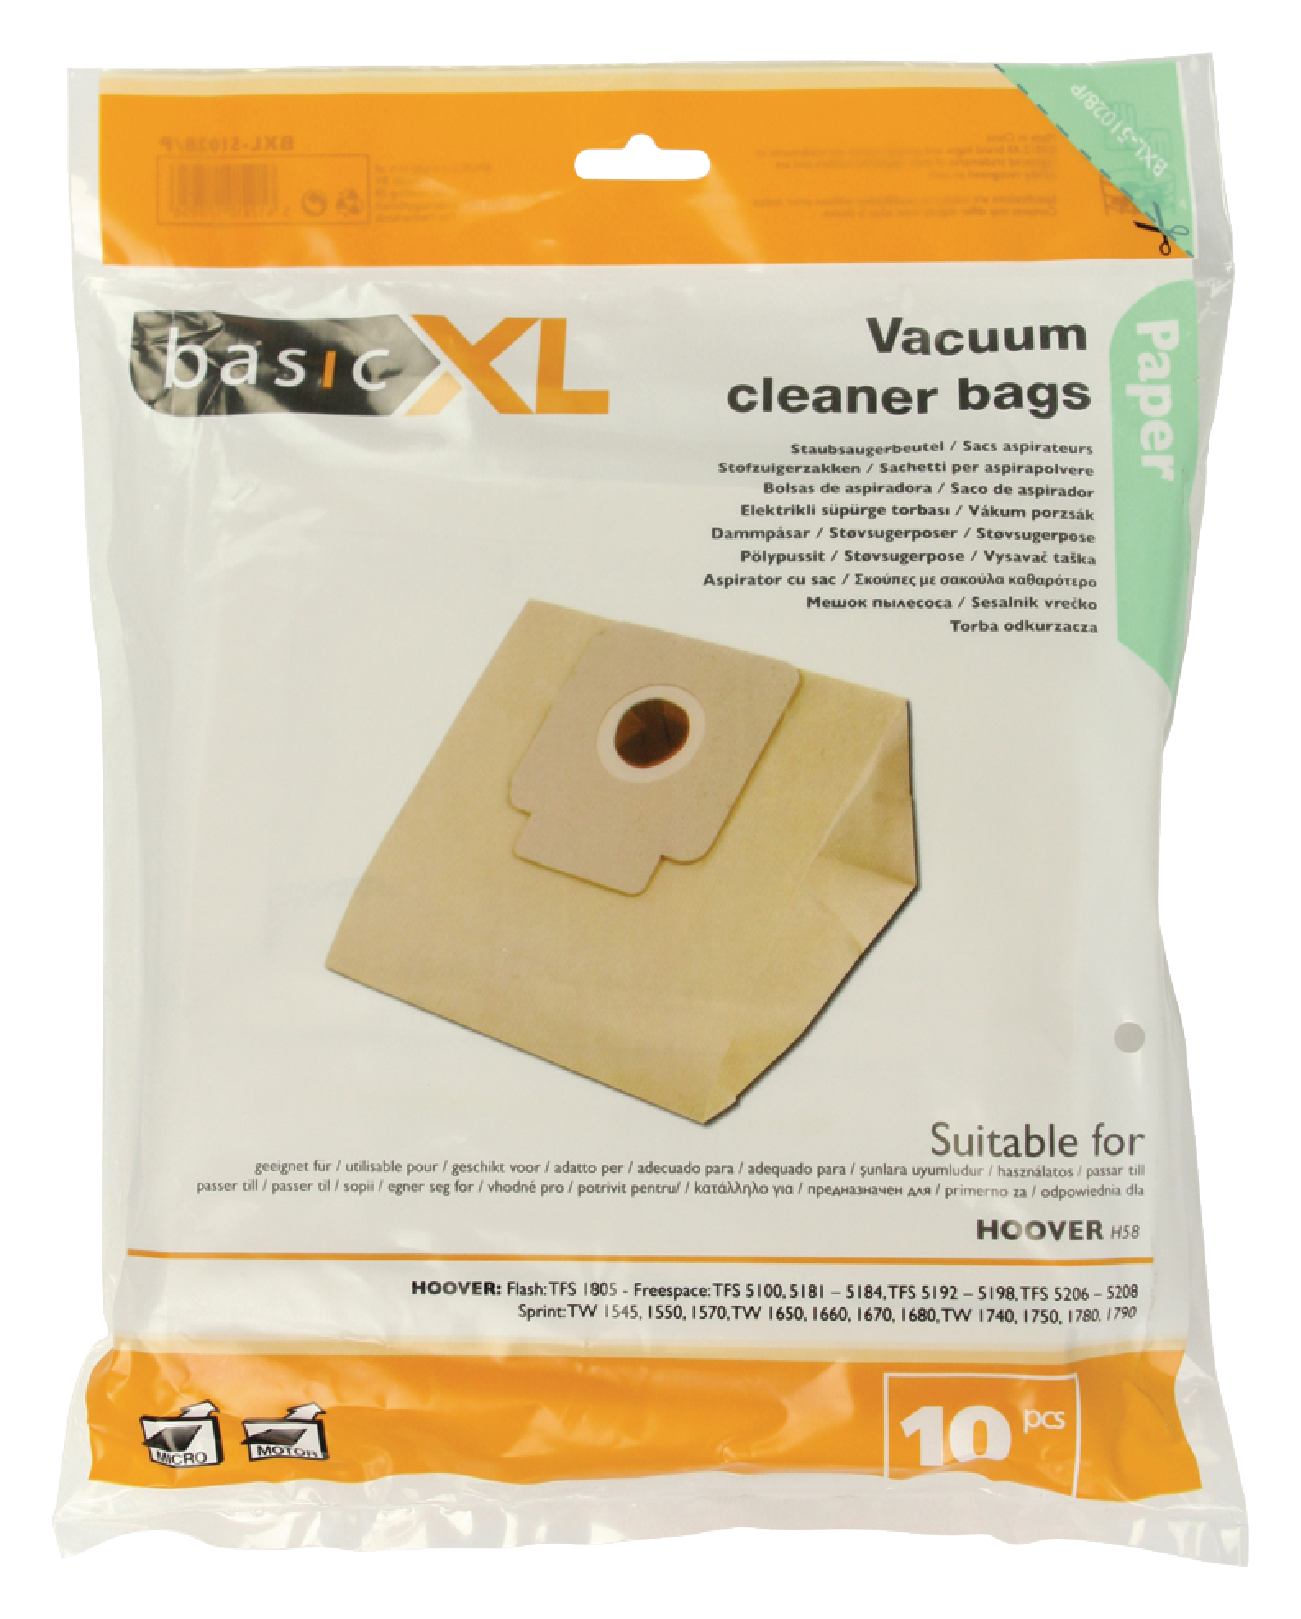 Hoover vacuum bags coupon code